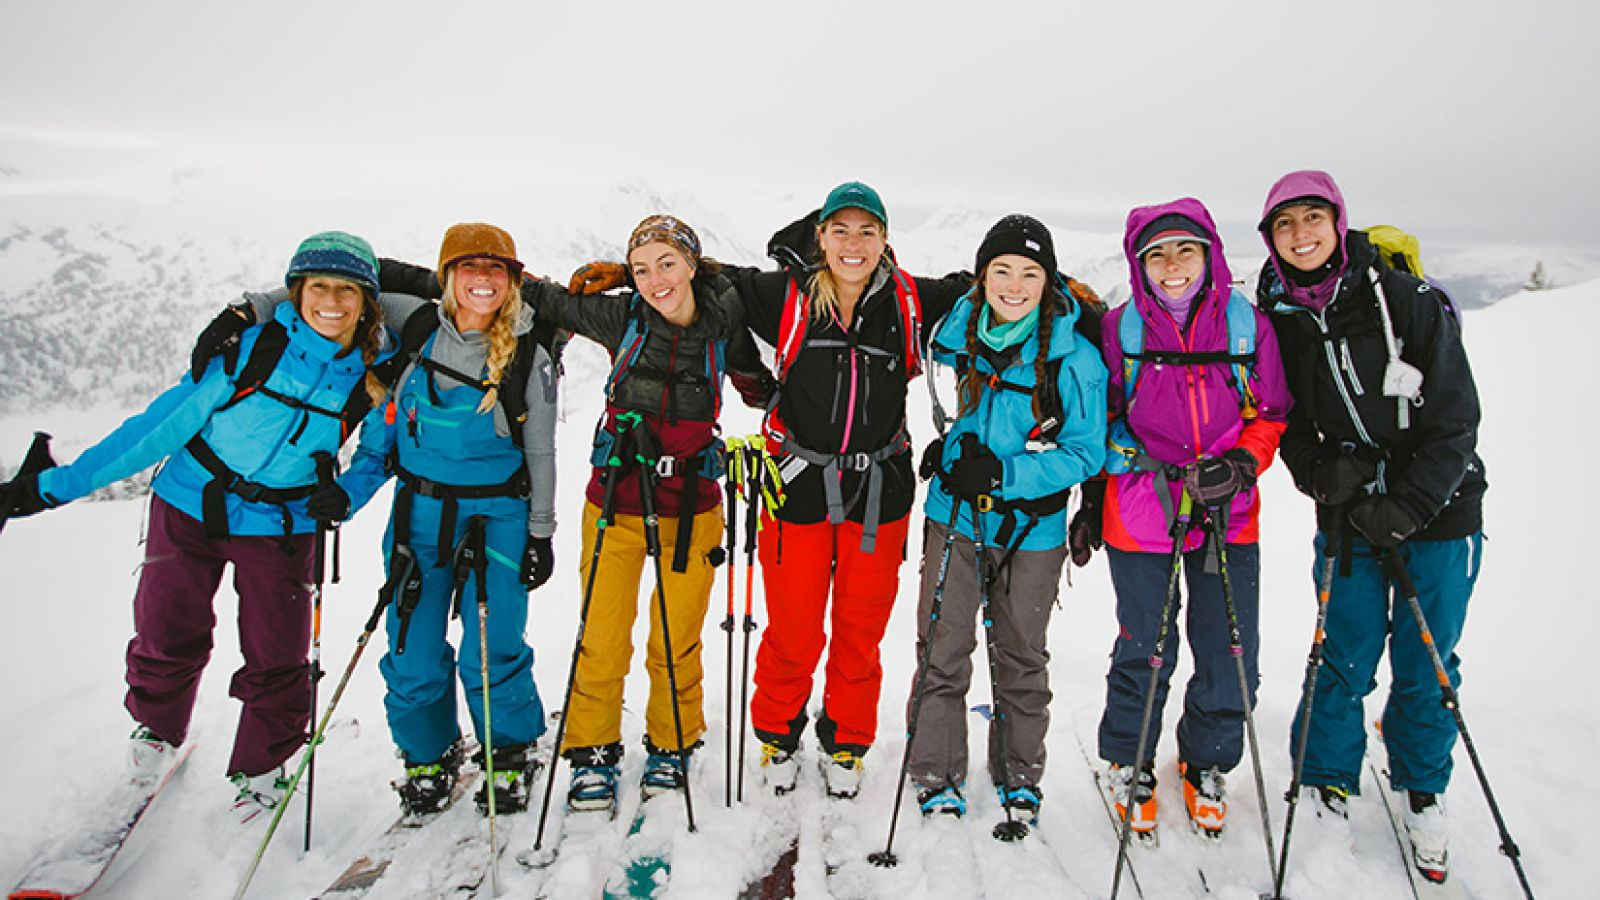 Learn about the backcountry and have fun!